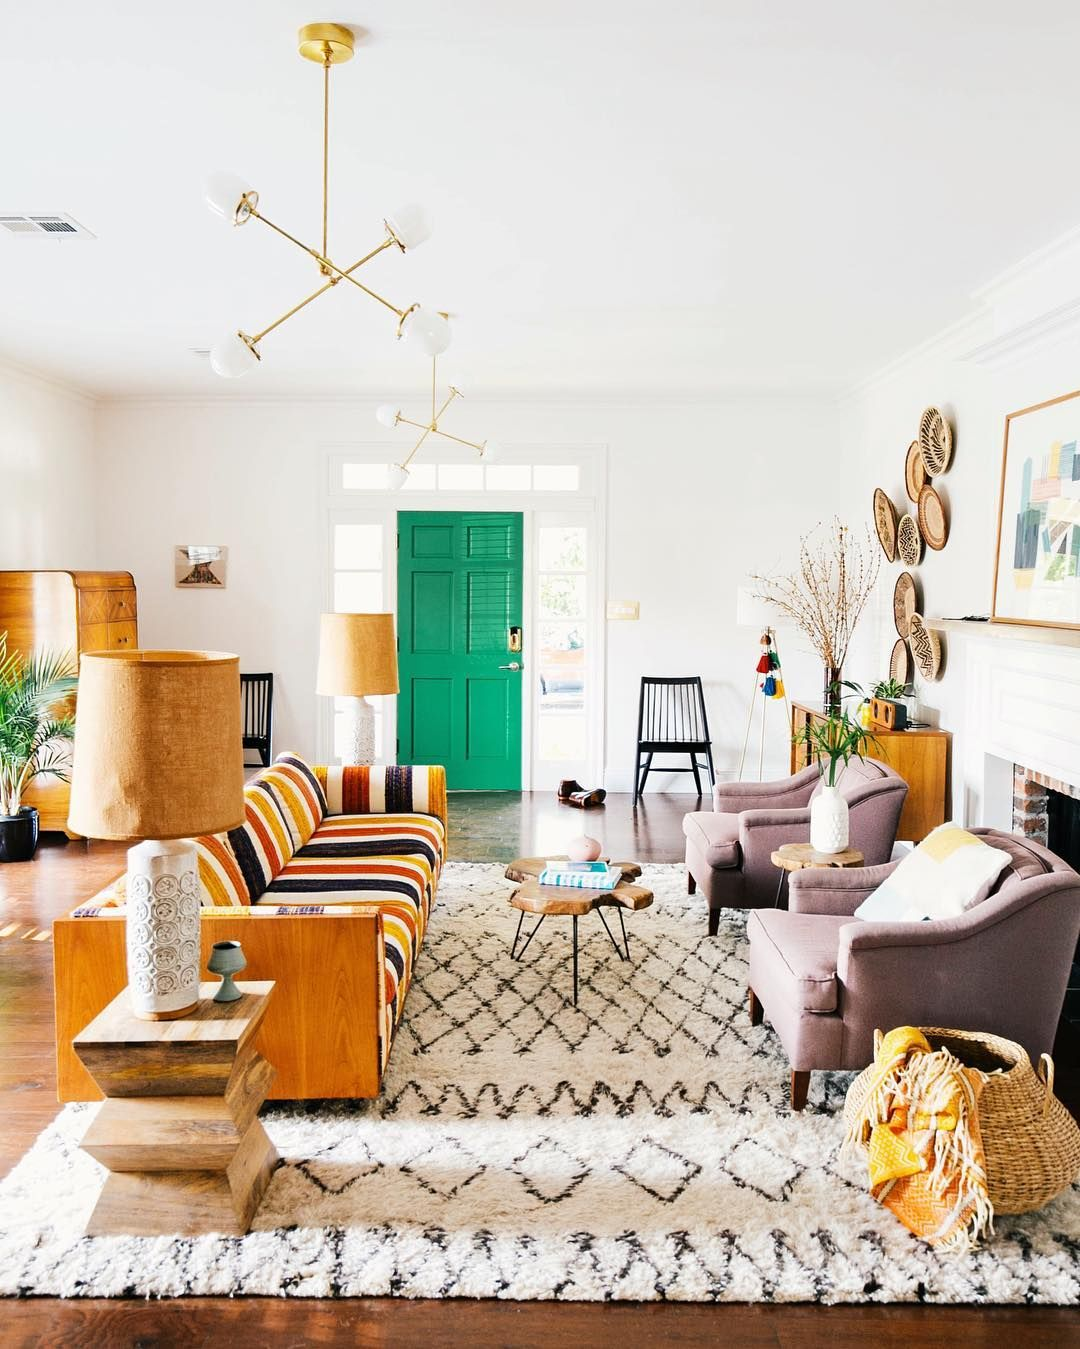 Turn Your Home Into a California Dream | Kelly green, Room decor and ...